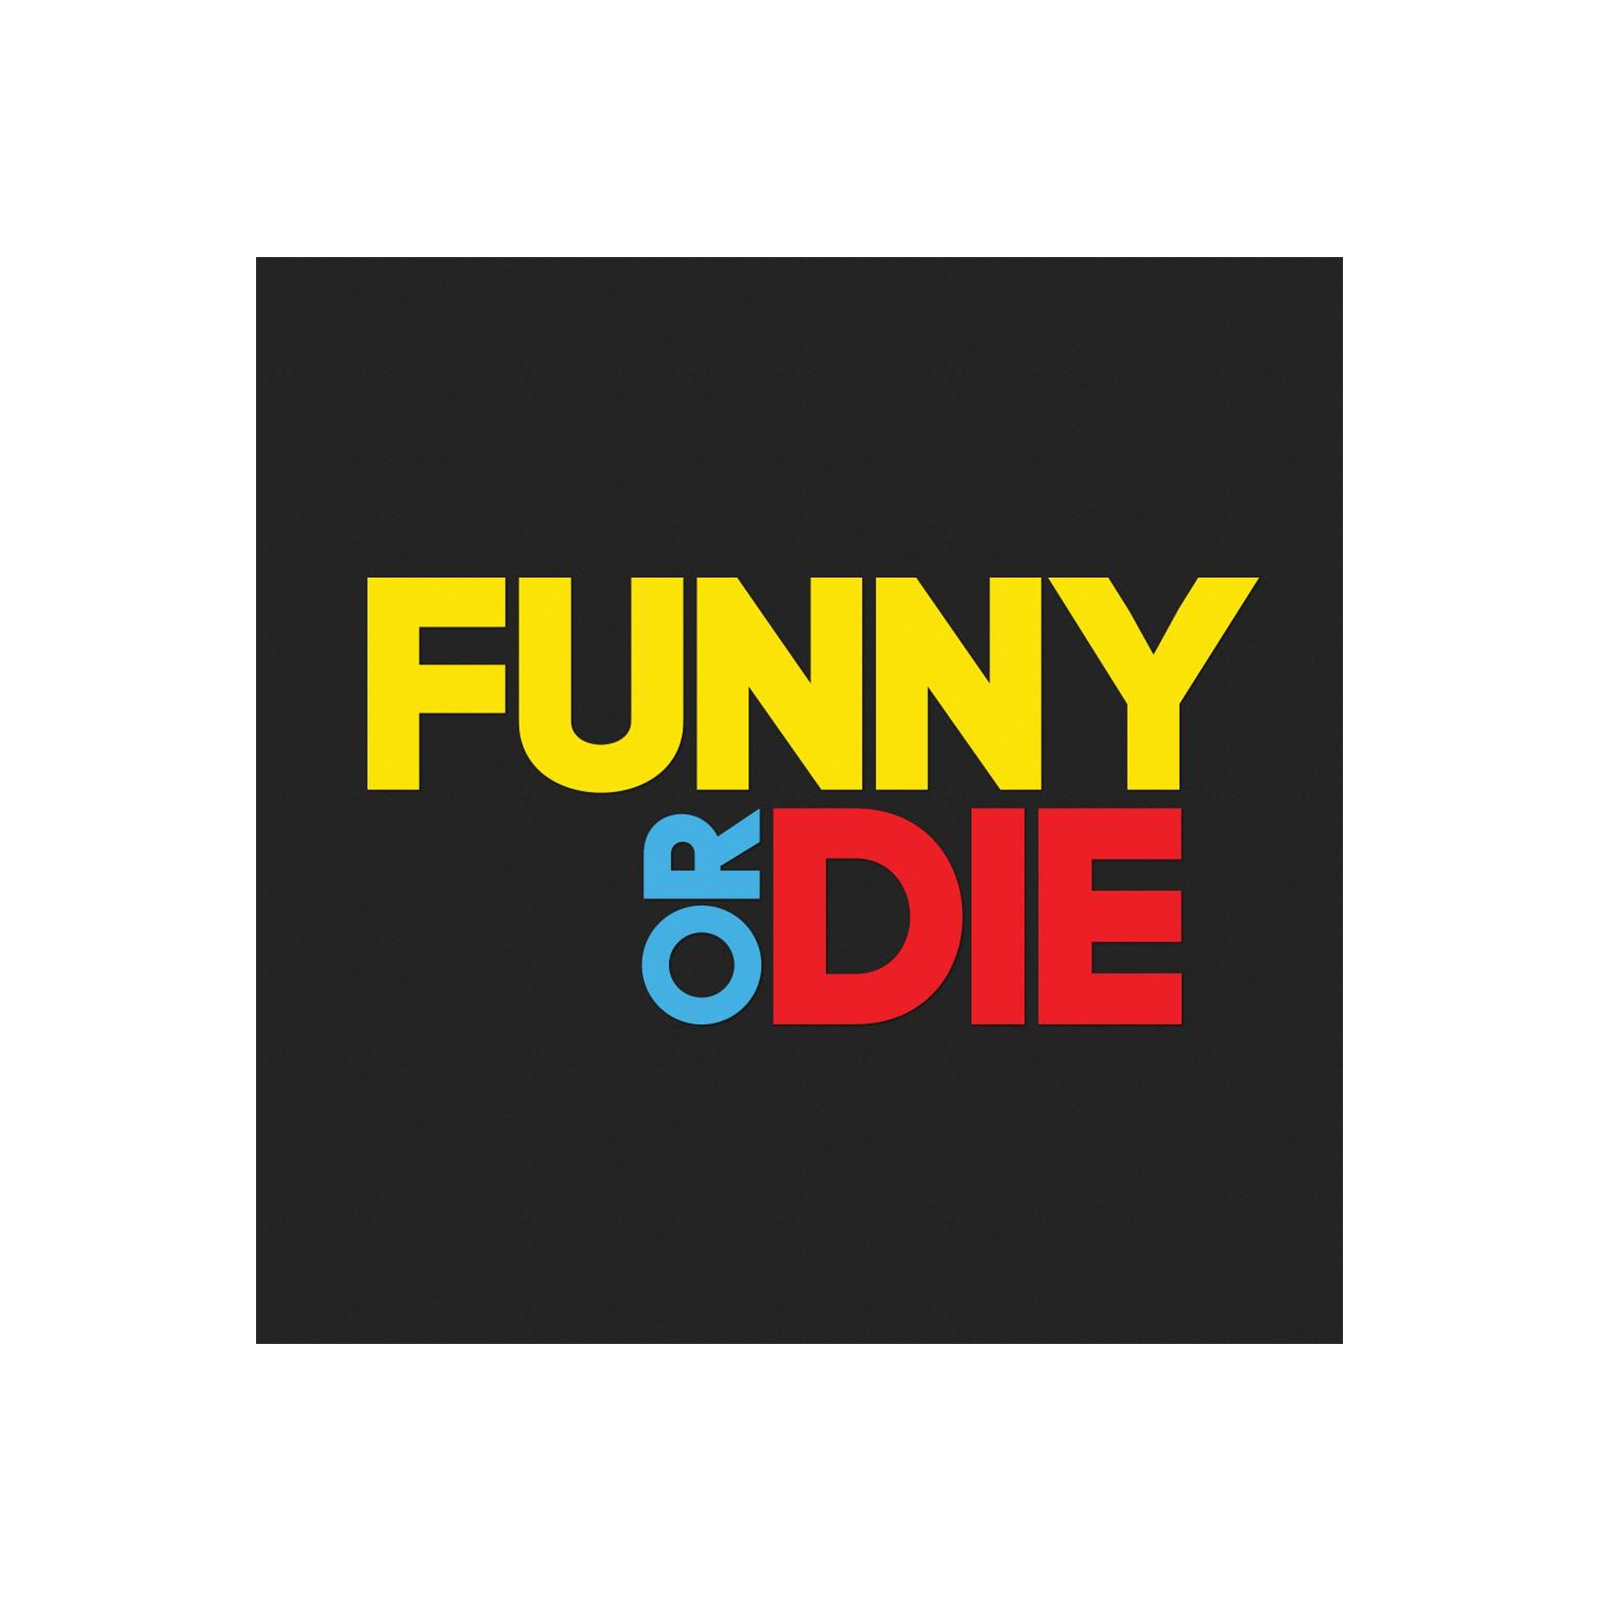 This comedy video social website is aimed at bringing together the funniest videos from the web. Celebrities follow this social platform a lot and it enables users to share, upload and rate videos.